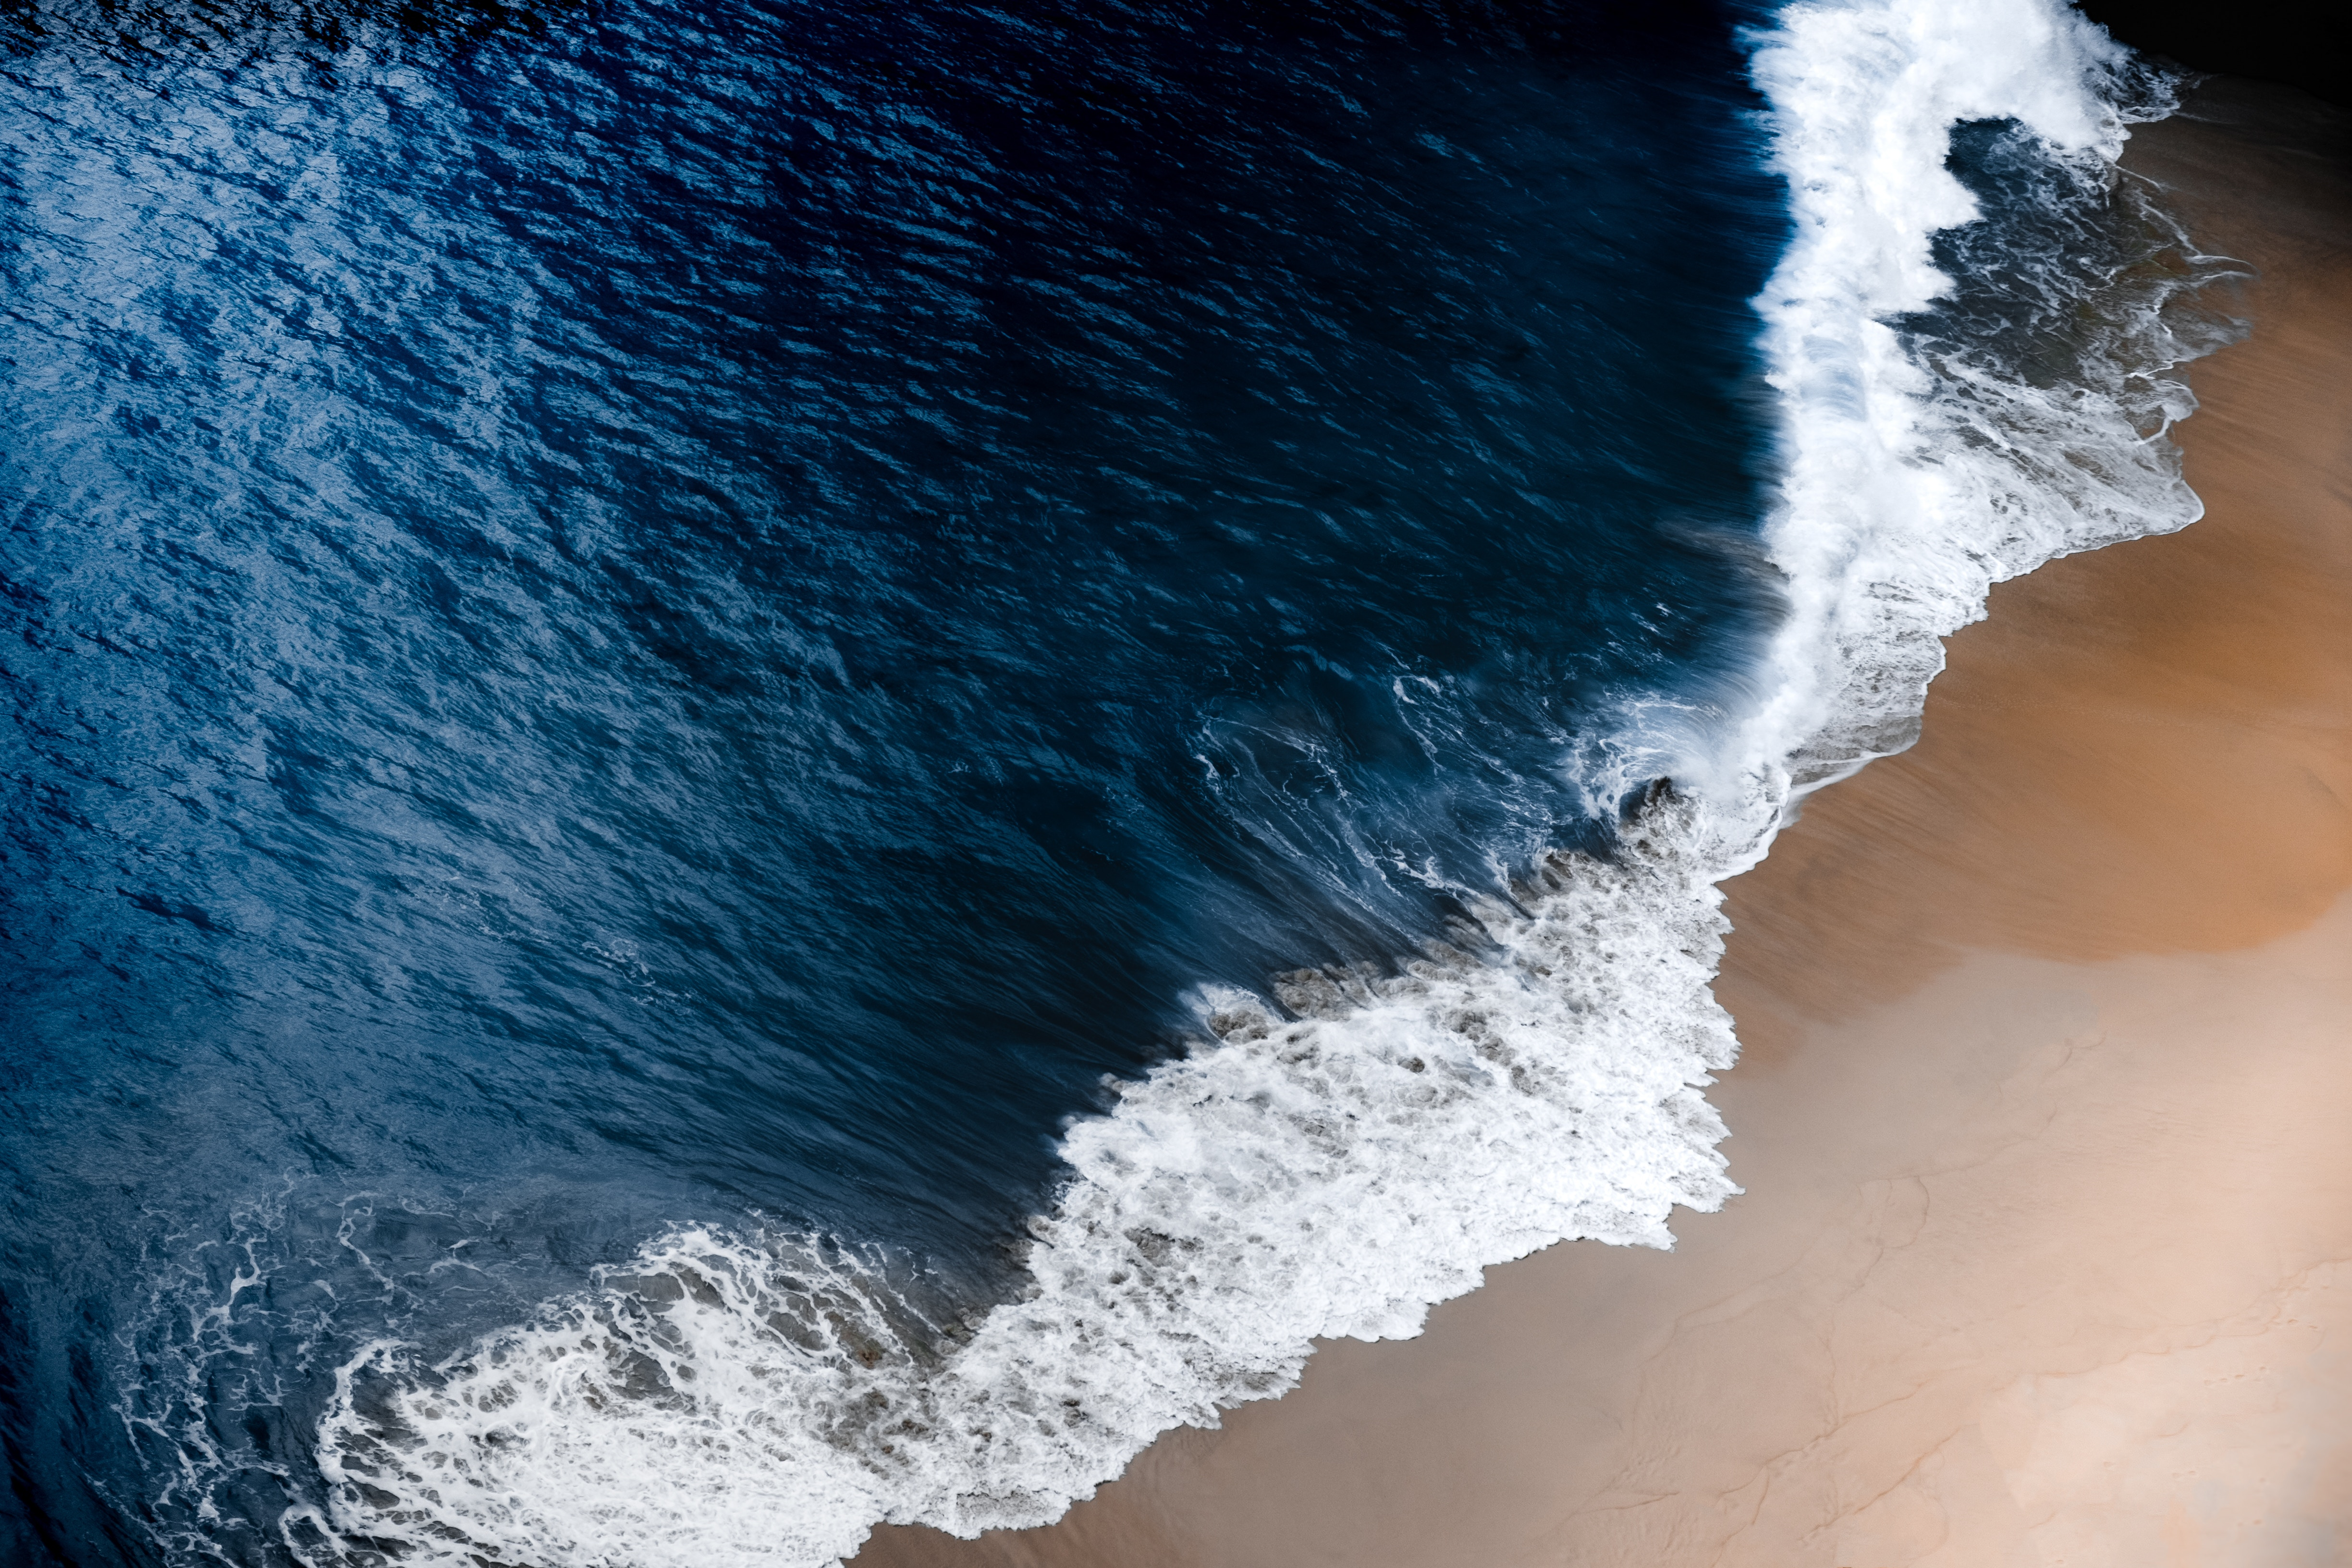 50+ Cool 4K Wallpapers for Android & iPhone 3840x2160